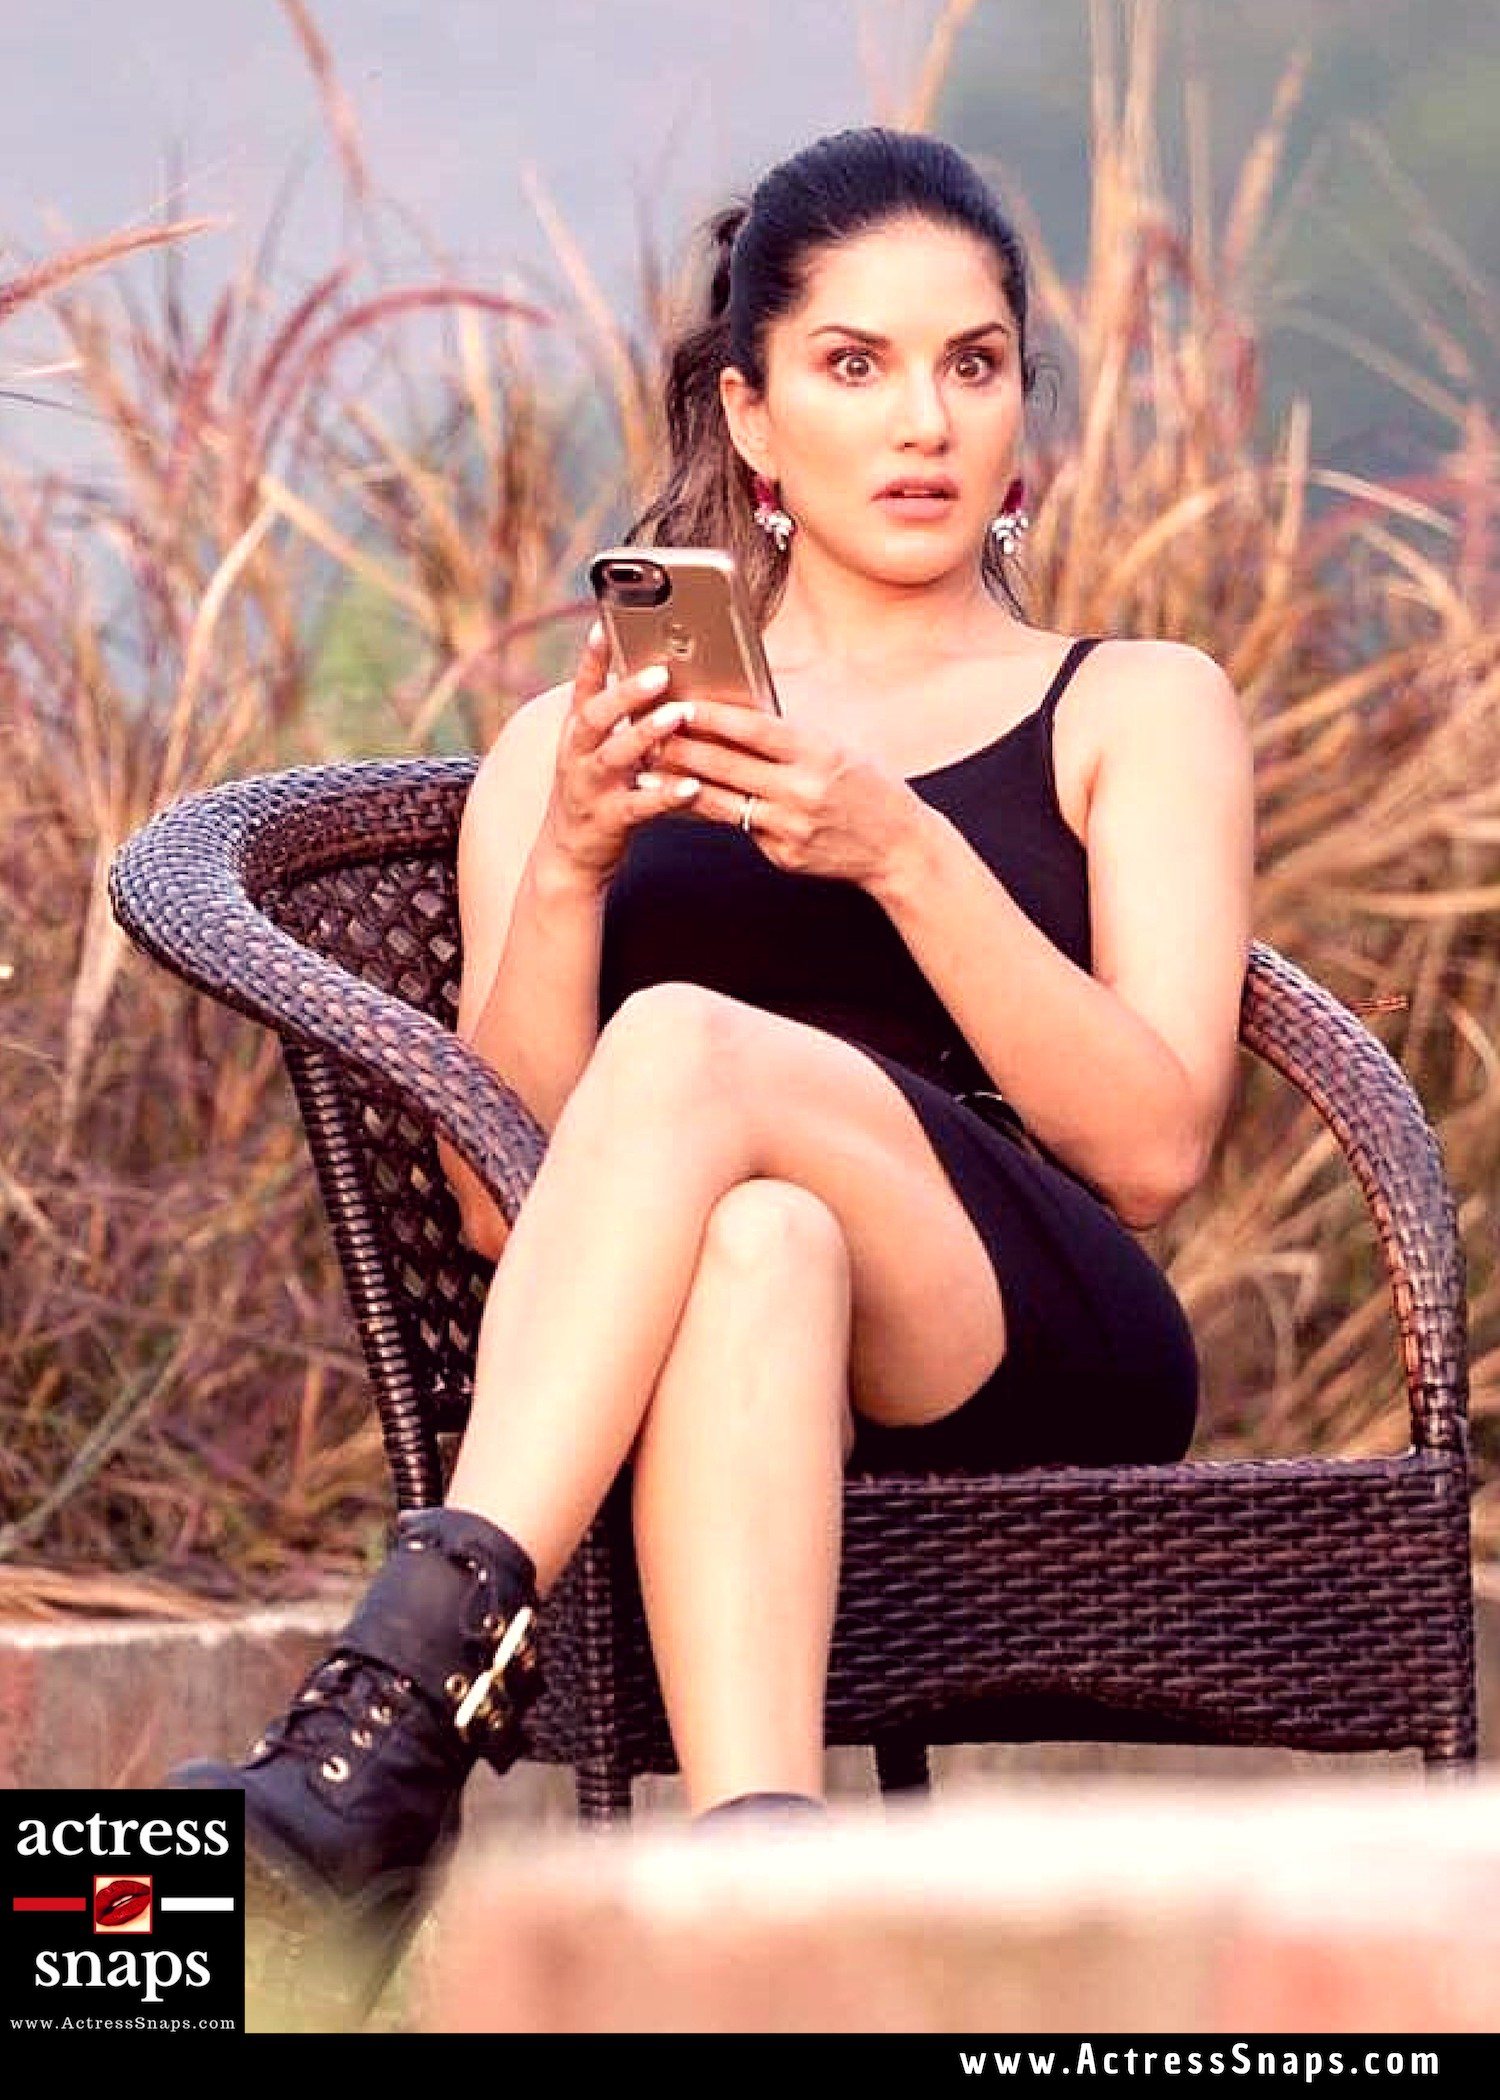 Sexy Sunny Leone - Social Media Pictures - Sexy Actress Pictures | Hot Actress Pictures - ActressSnaps.com